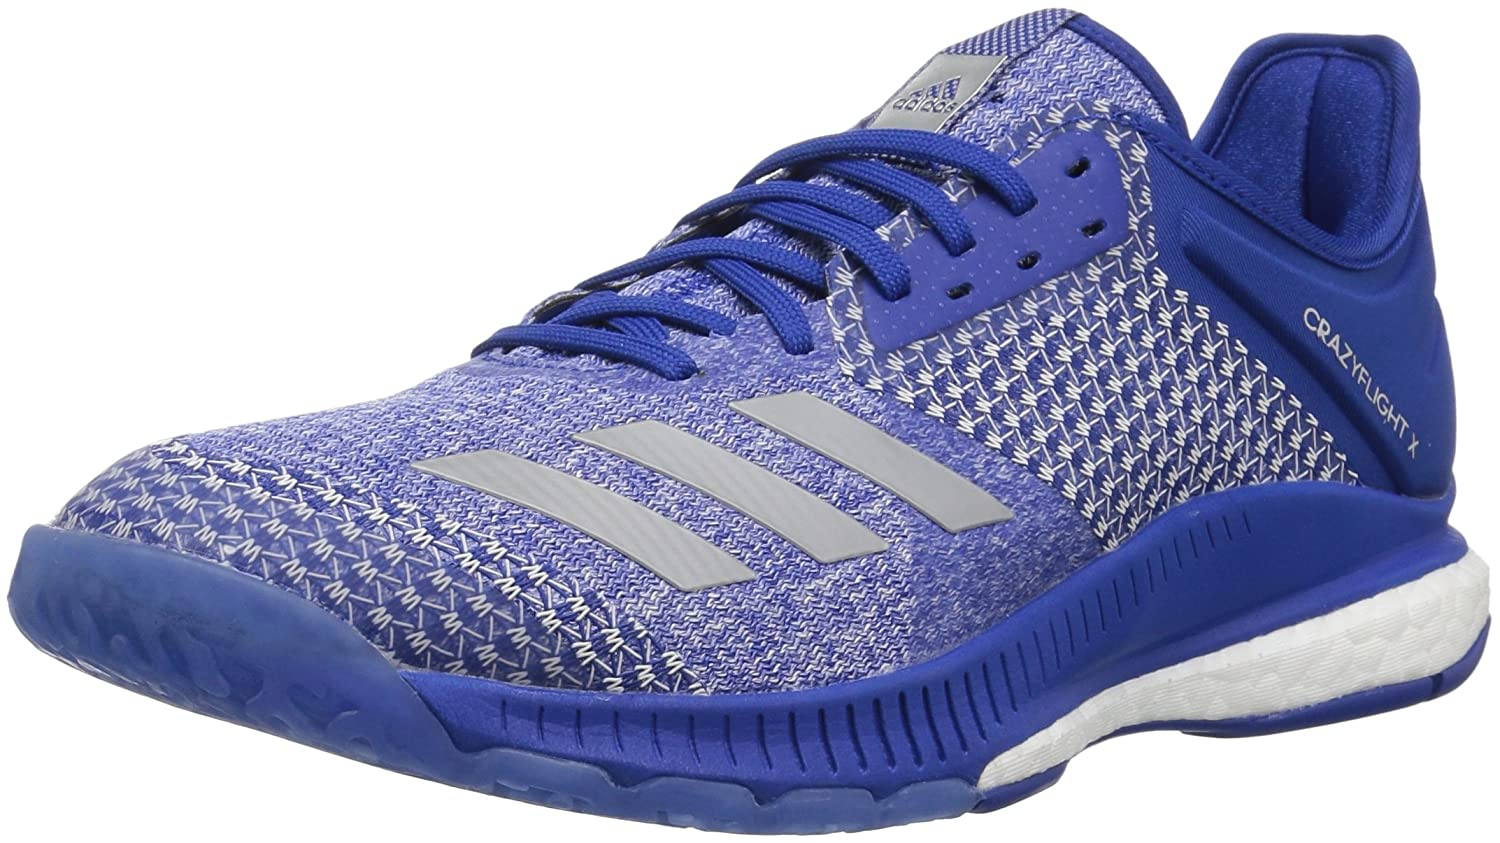 adidas Women's Crazyflight X 2 Volleyball Shoe B077X4Q84F 9 B(M) US|Collegiate Royal/Silver Metallic/White